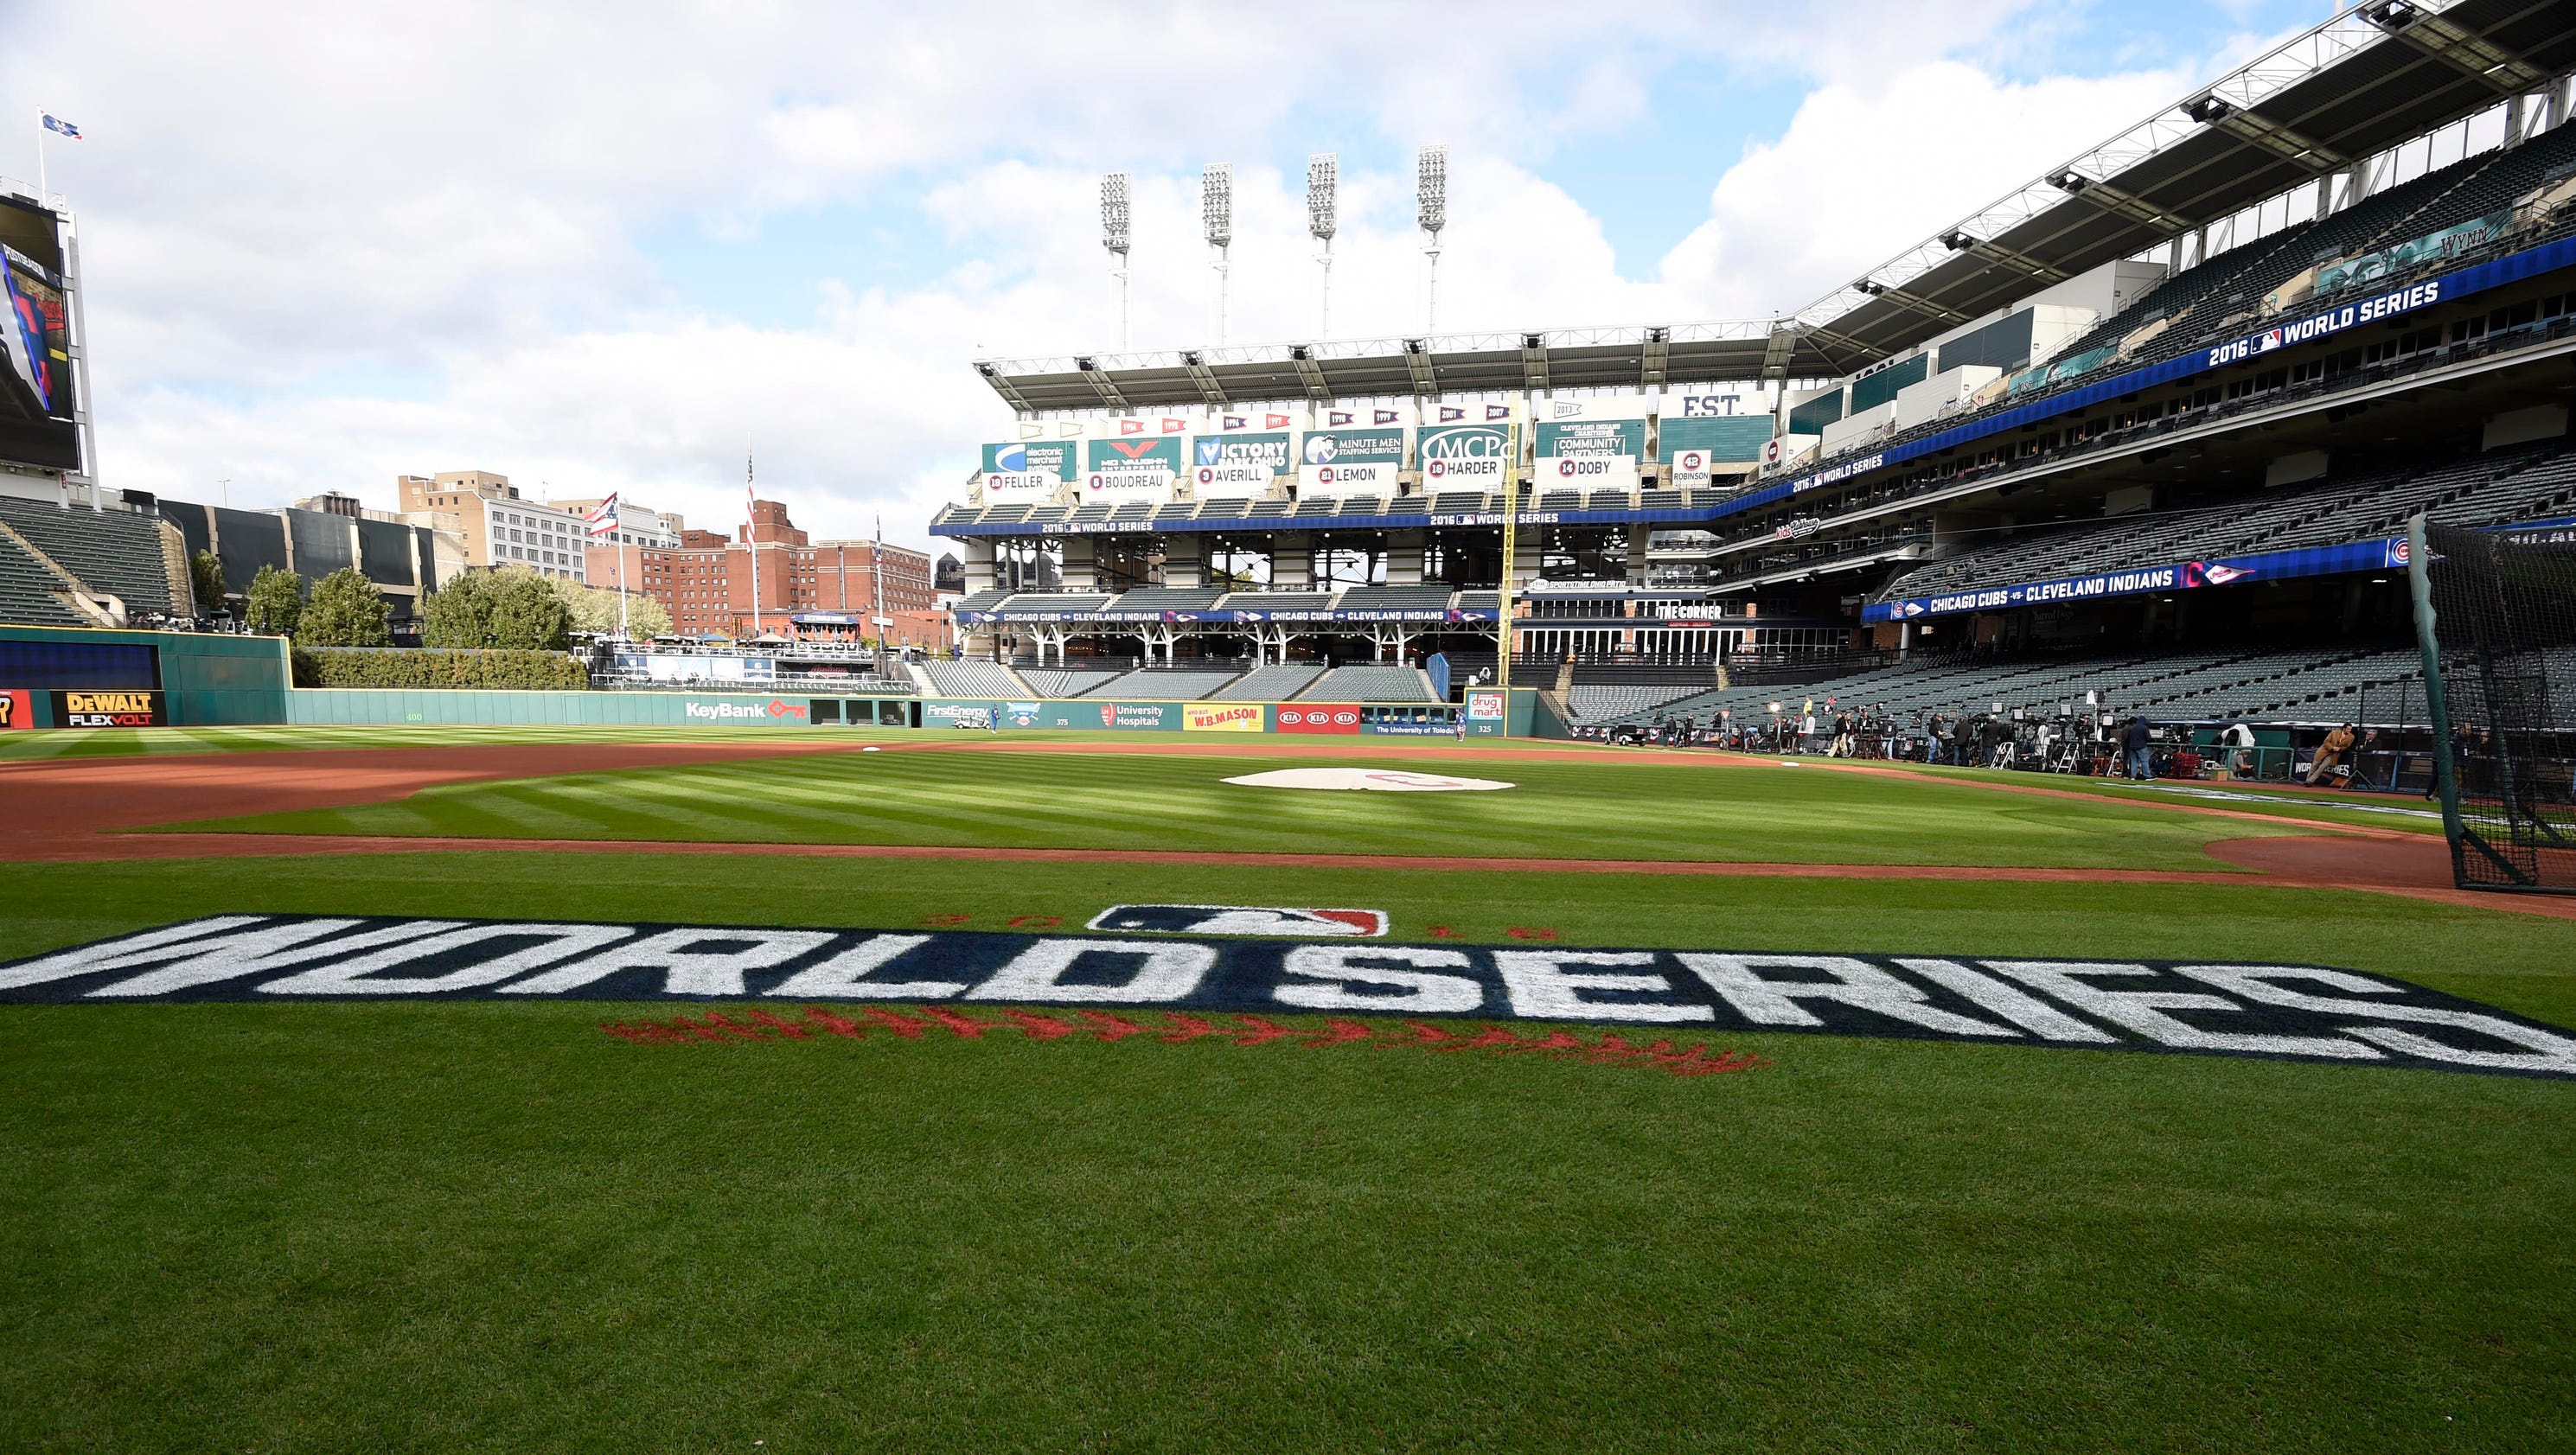 636130309308921477-usp-mlb-world-series-chicago-cubs-at-cleveland-in-86241248